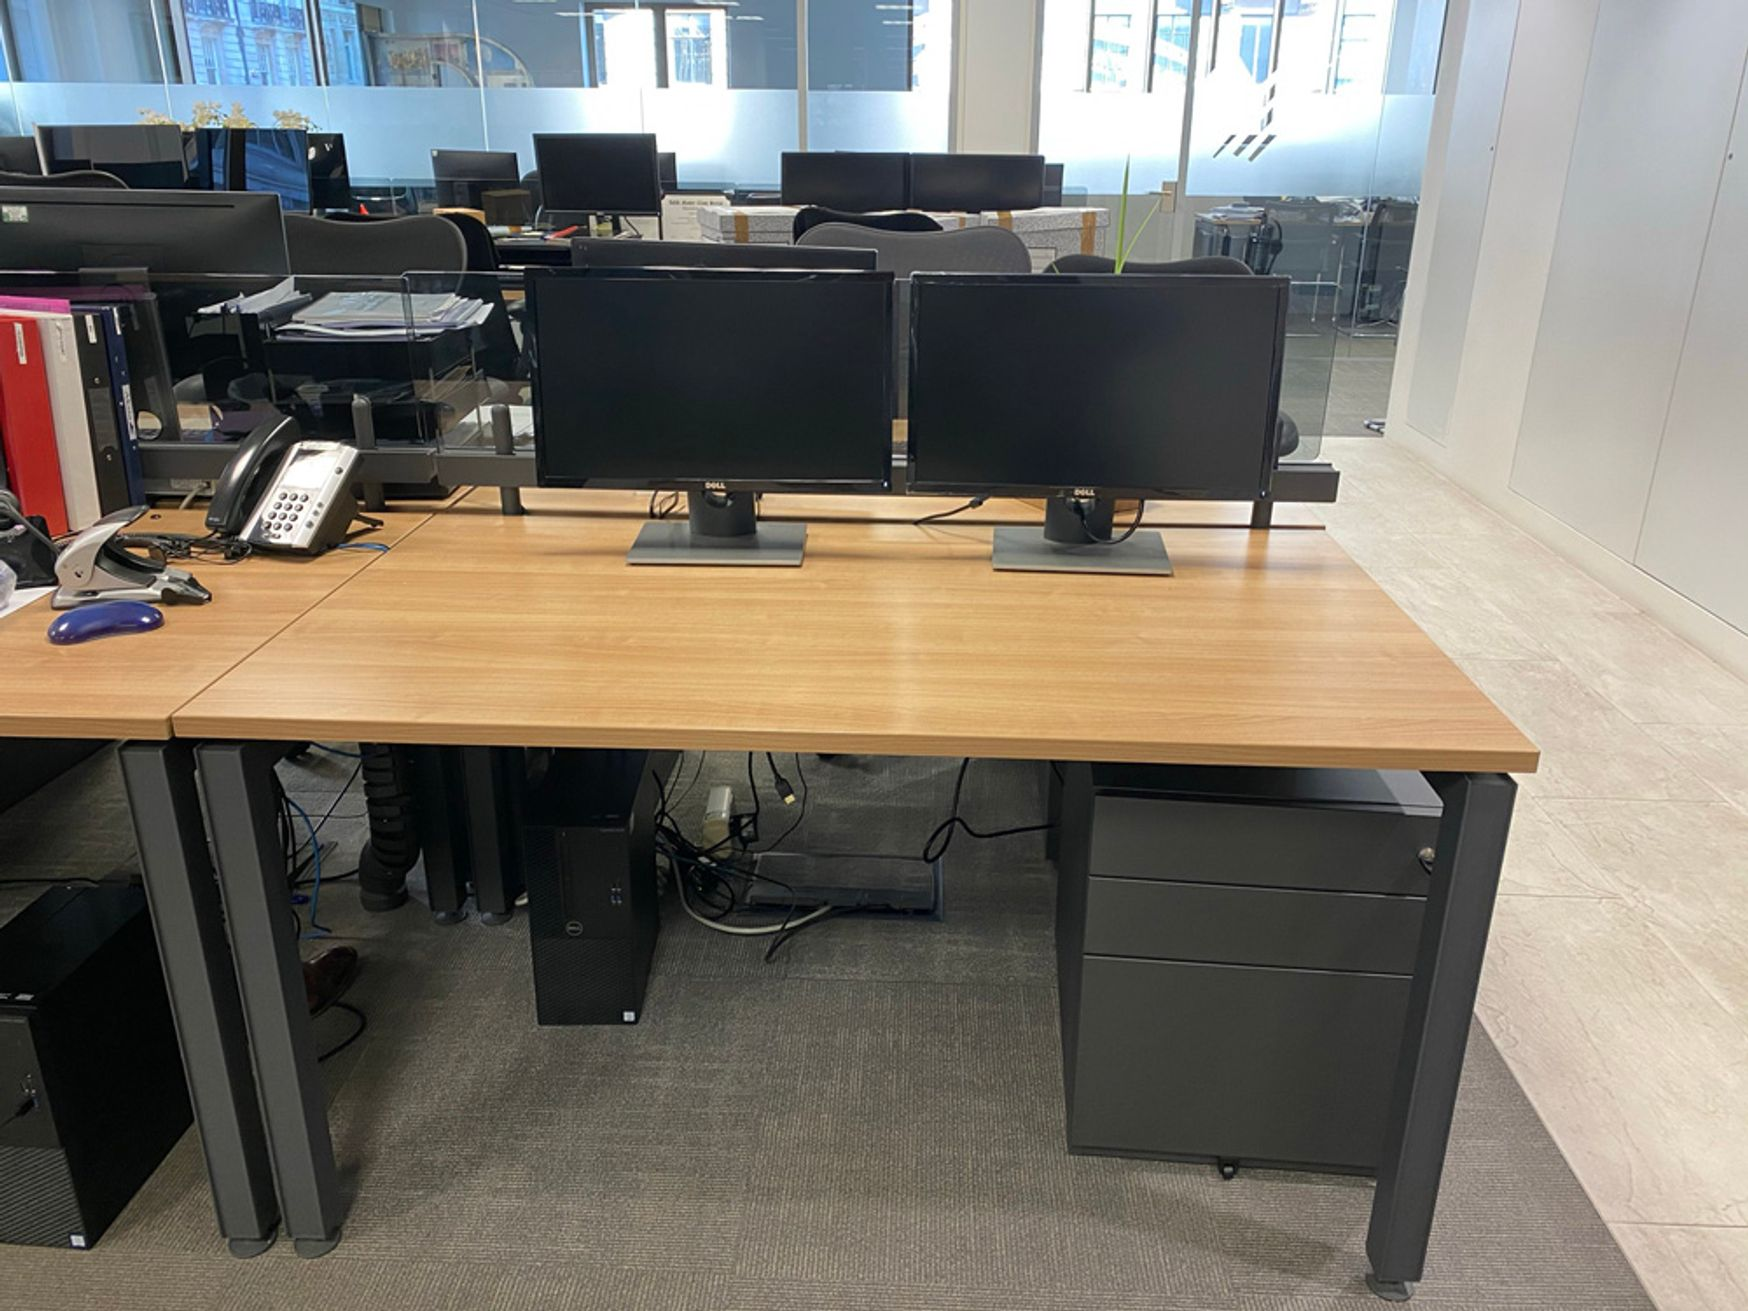 <b><i>2 Weeks To Sell. Prices Just Reduced By 50%! Herman Miller Desks and lots more!</b></i>